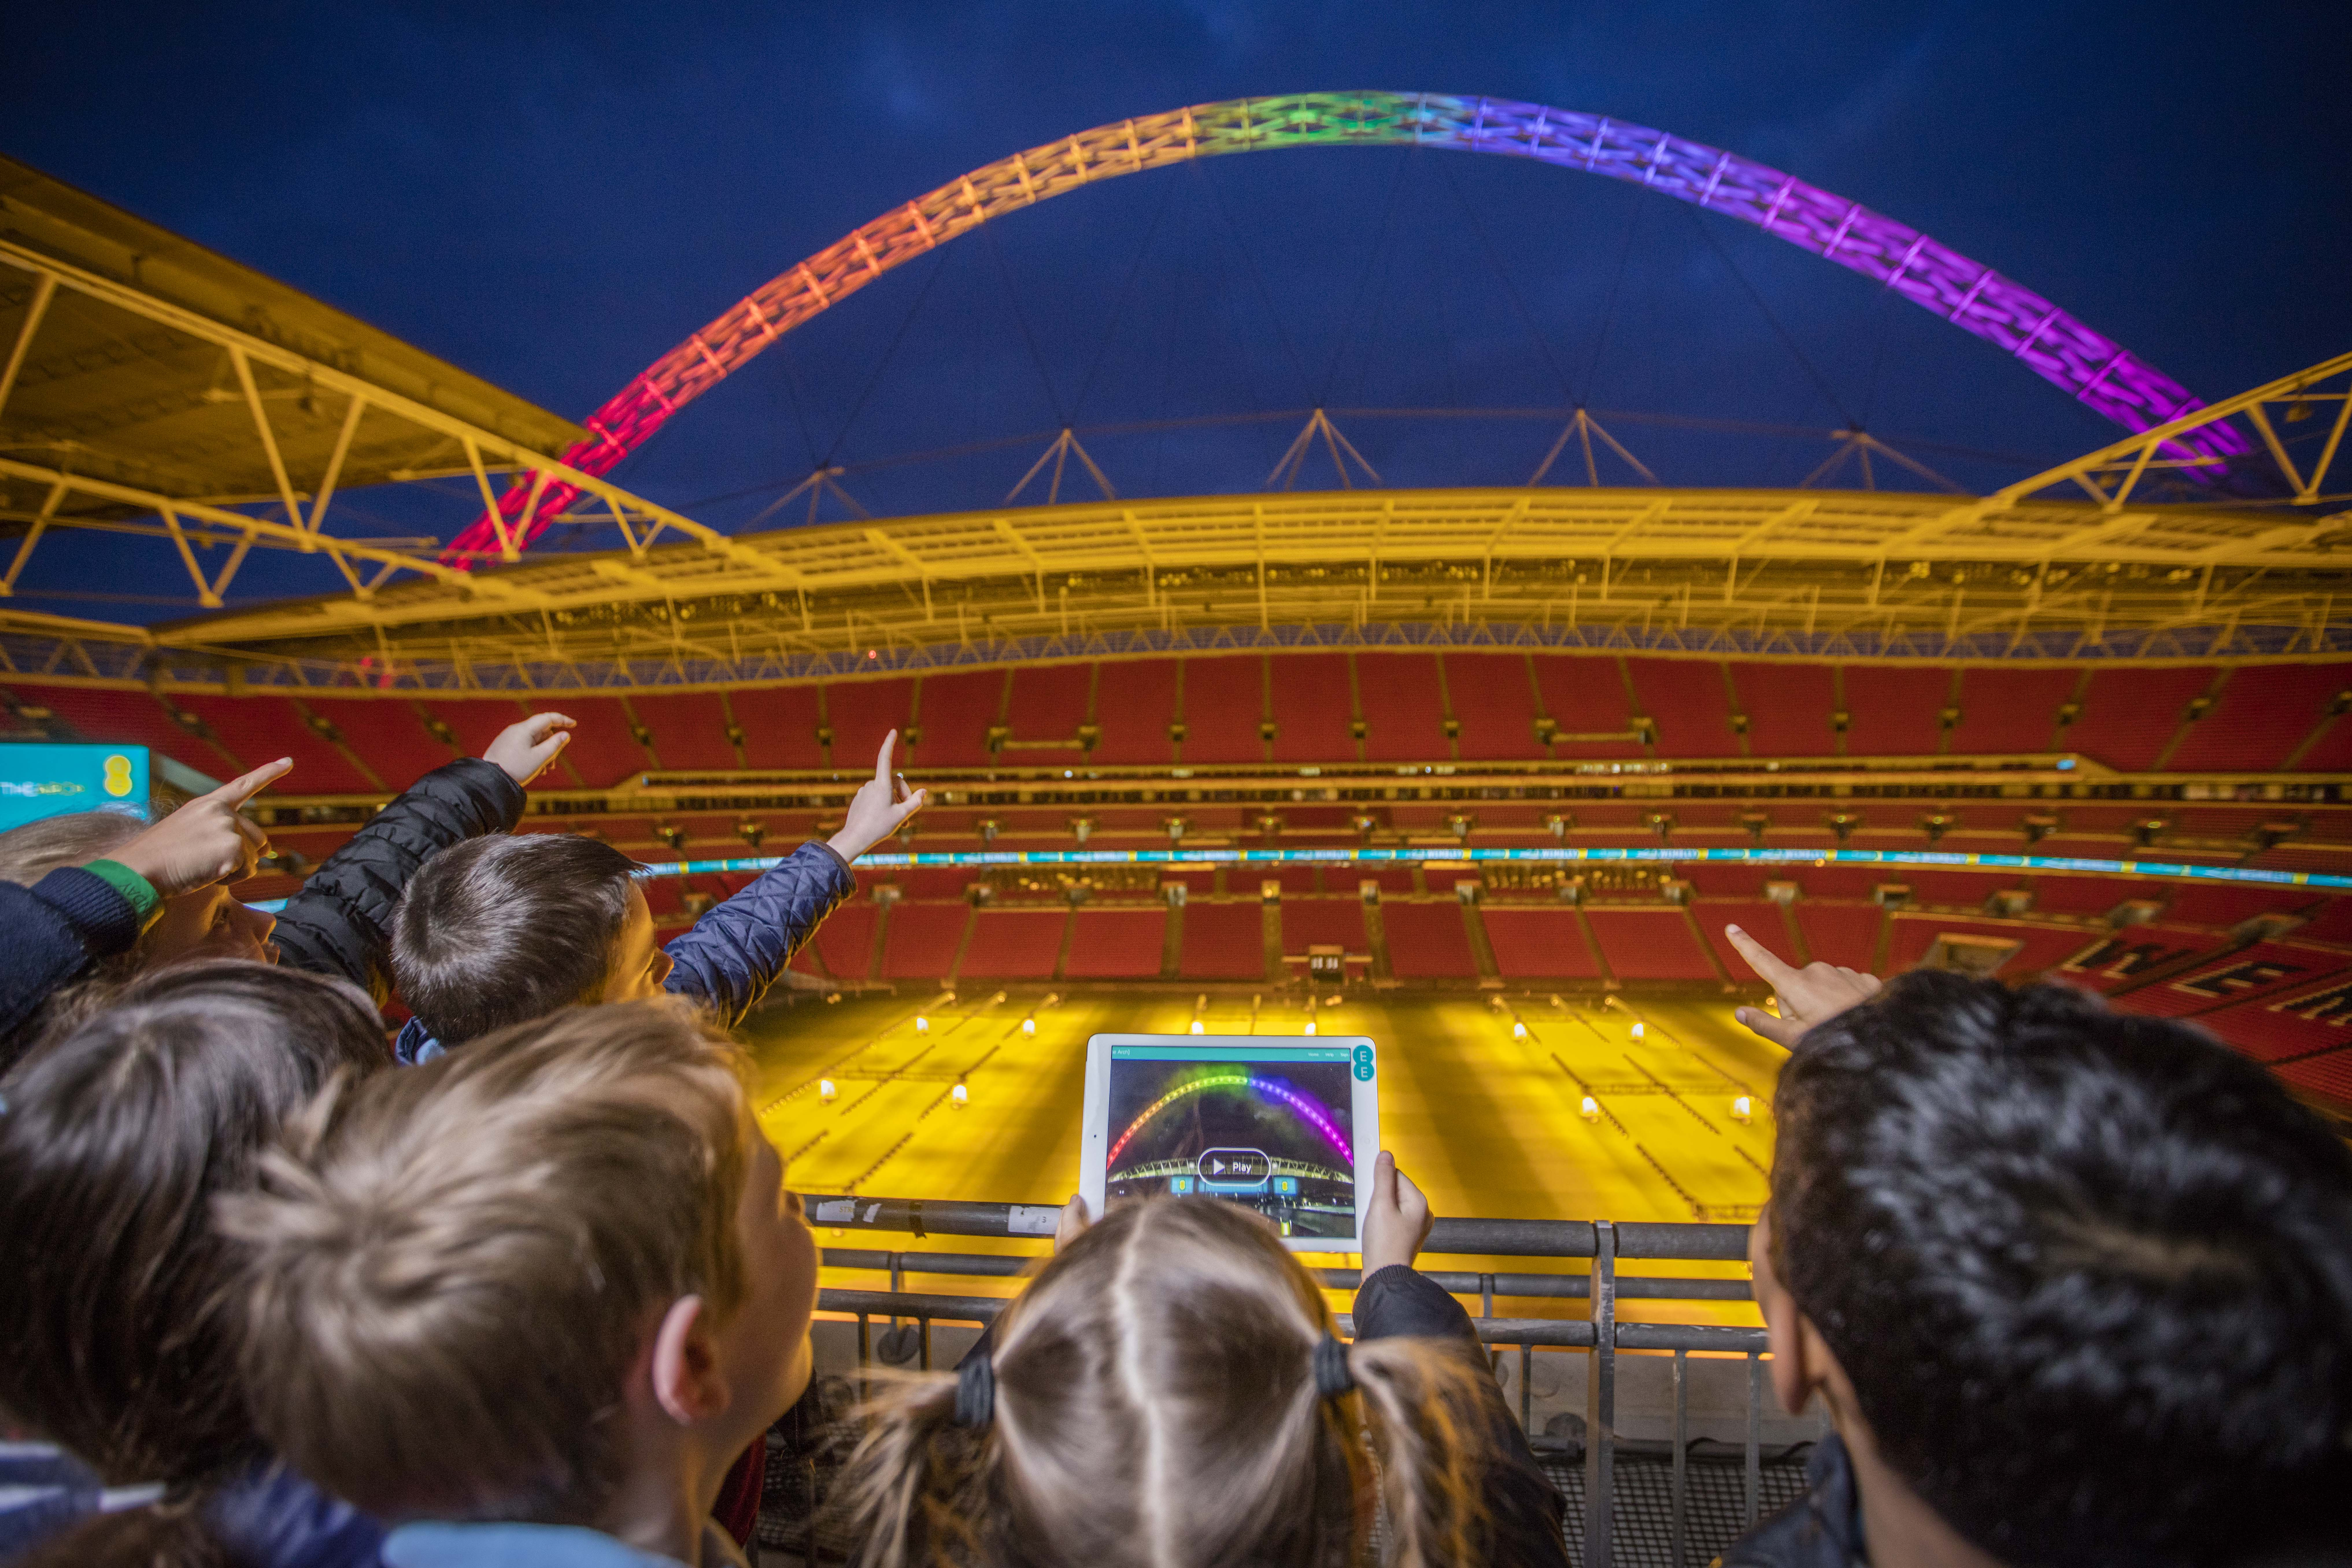 Design your own light show at Wembley's Arch with EE app